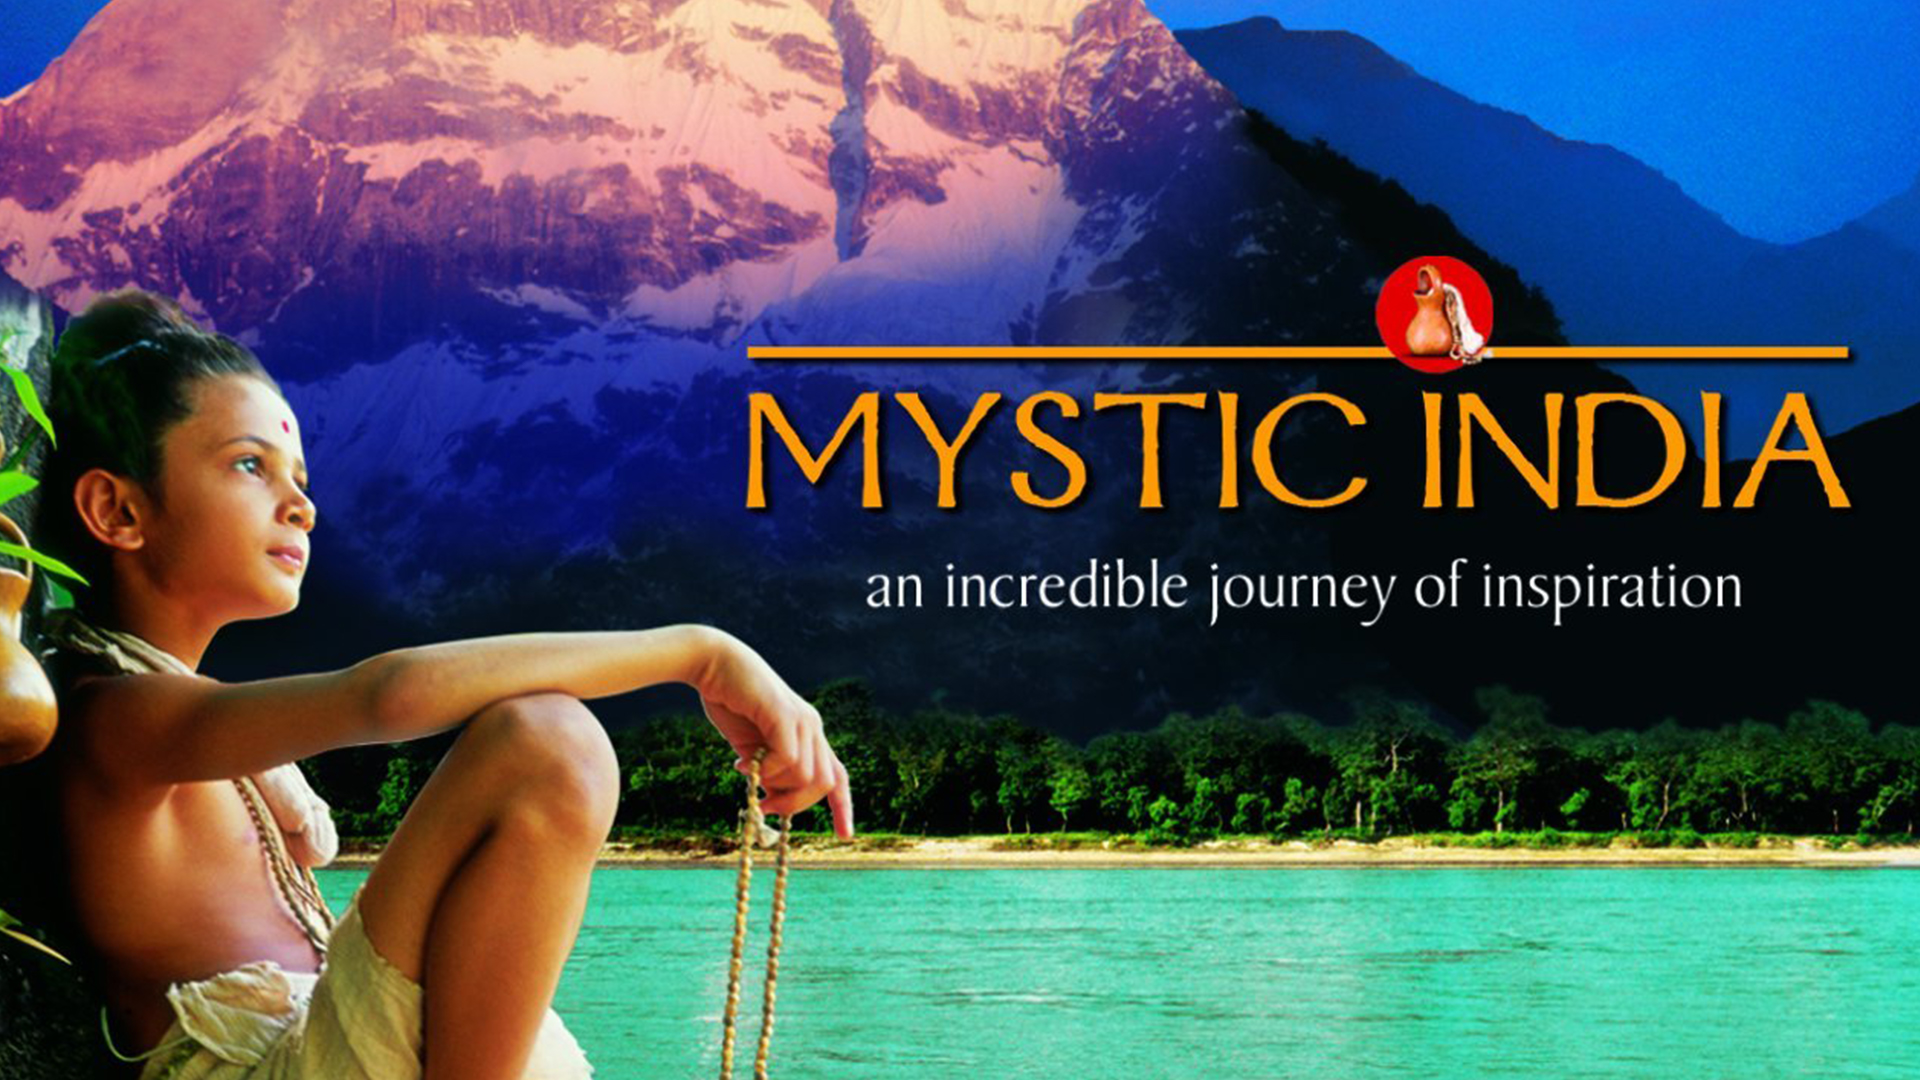 Mystic India - An Incredible Journey of Inspiration